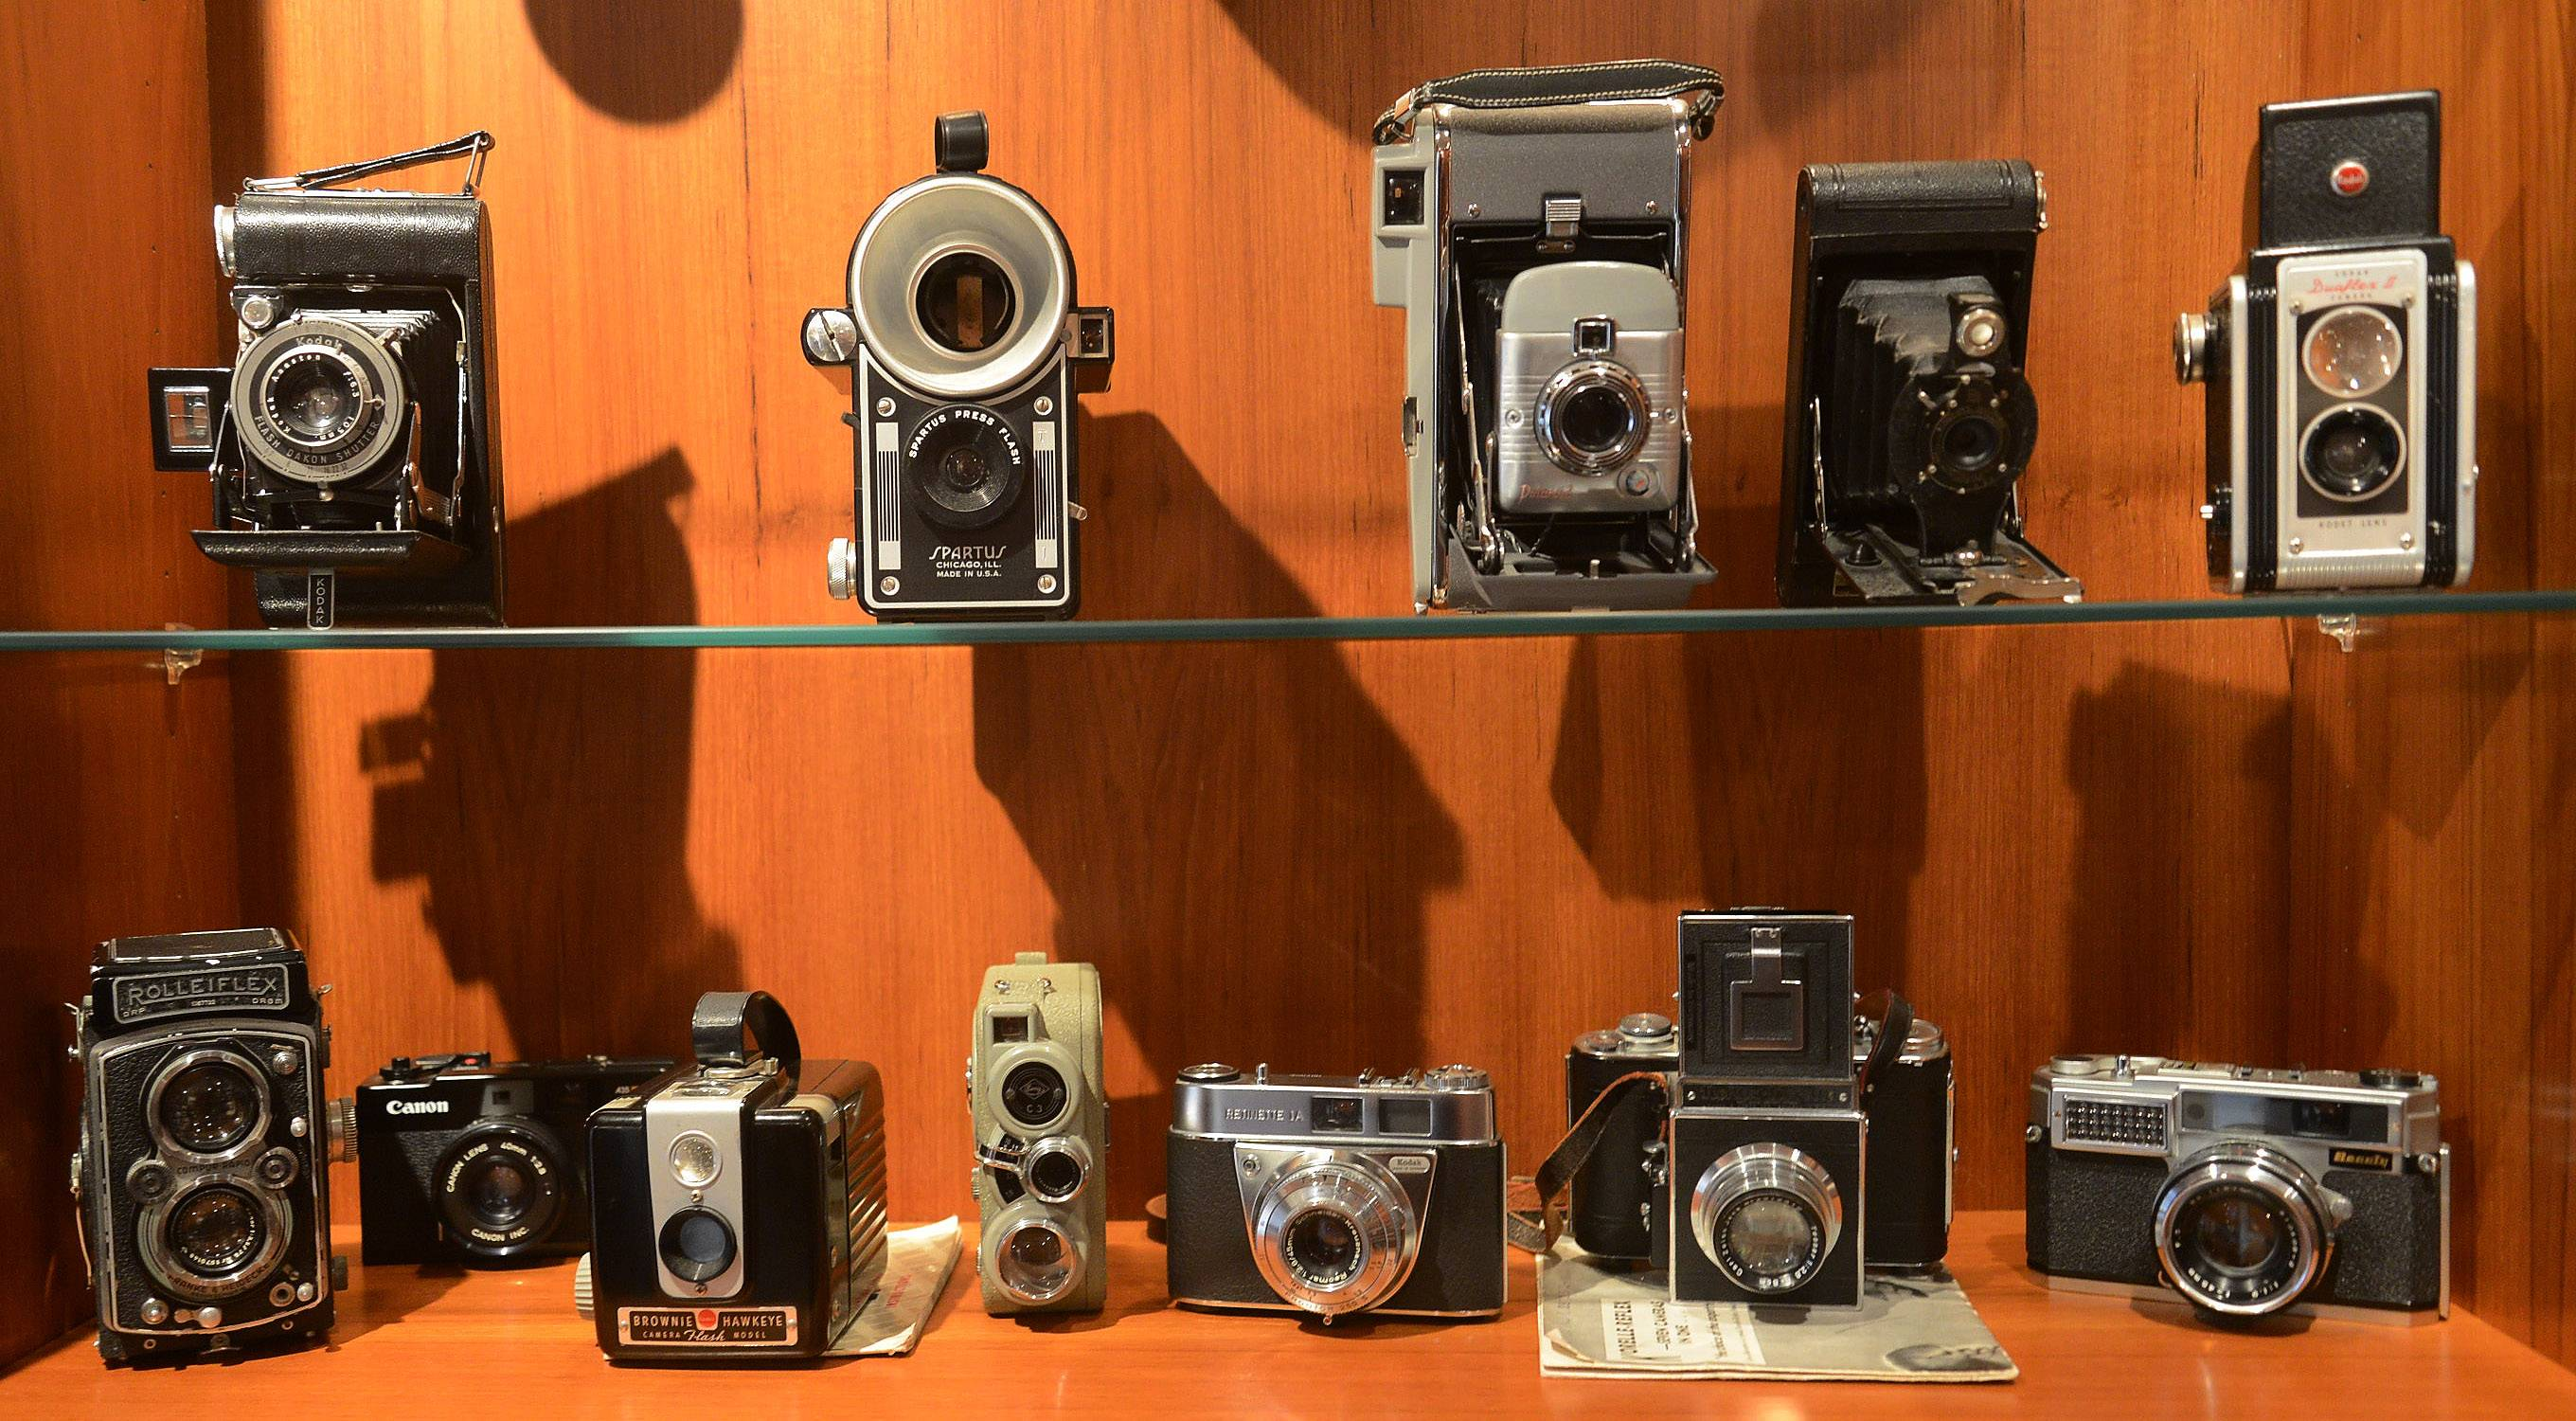 Deerfield photographer Bruce Mondschain's antique camera collection.